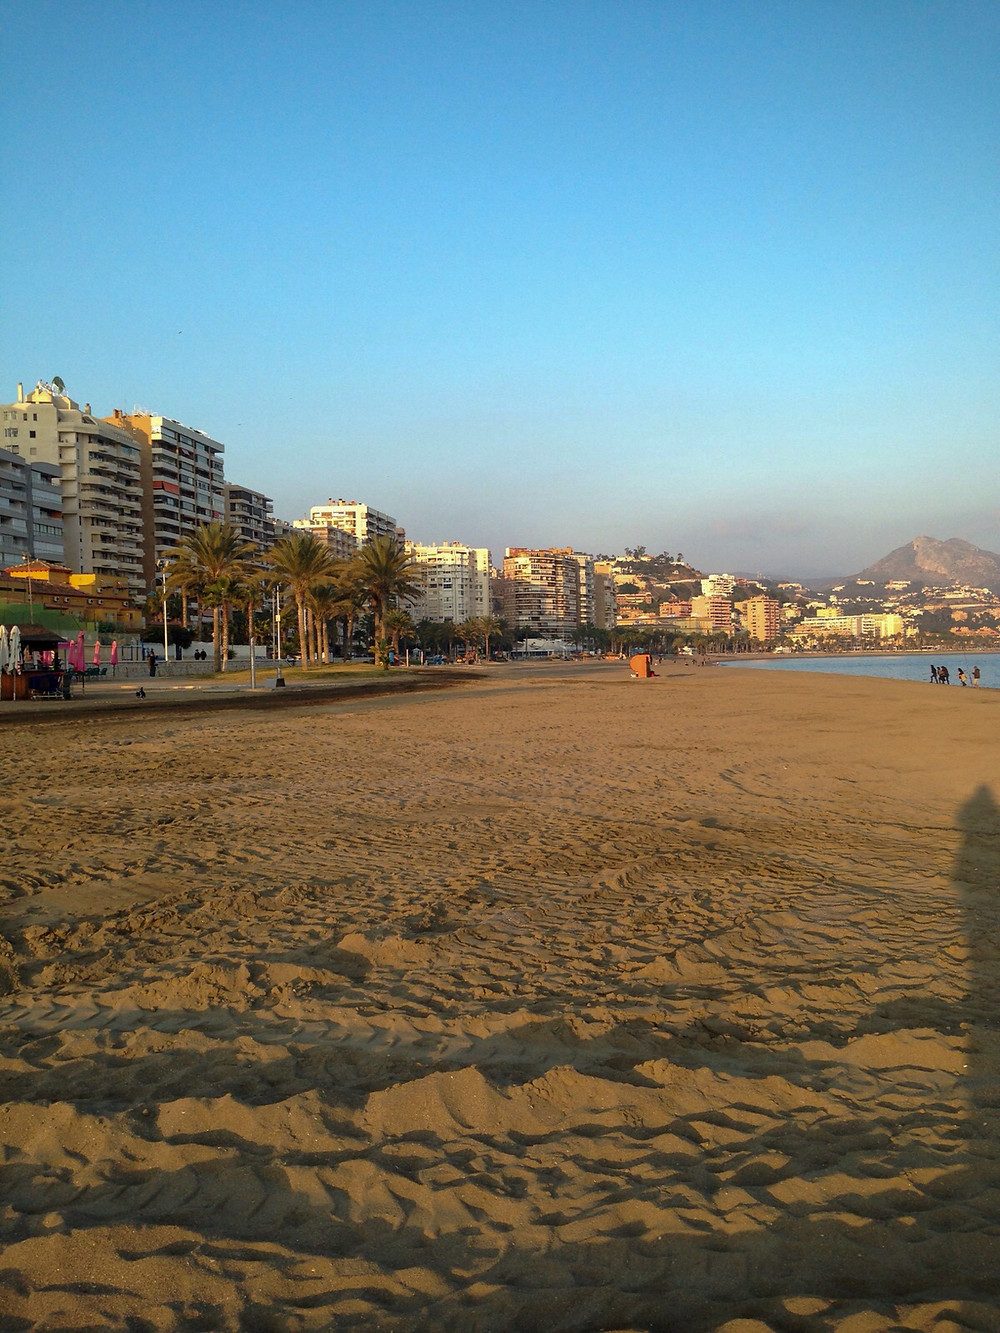 Malagueta, Málaga's beach, Spain